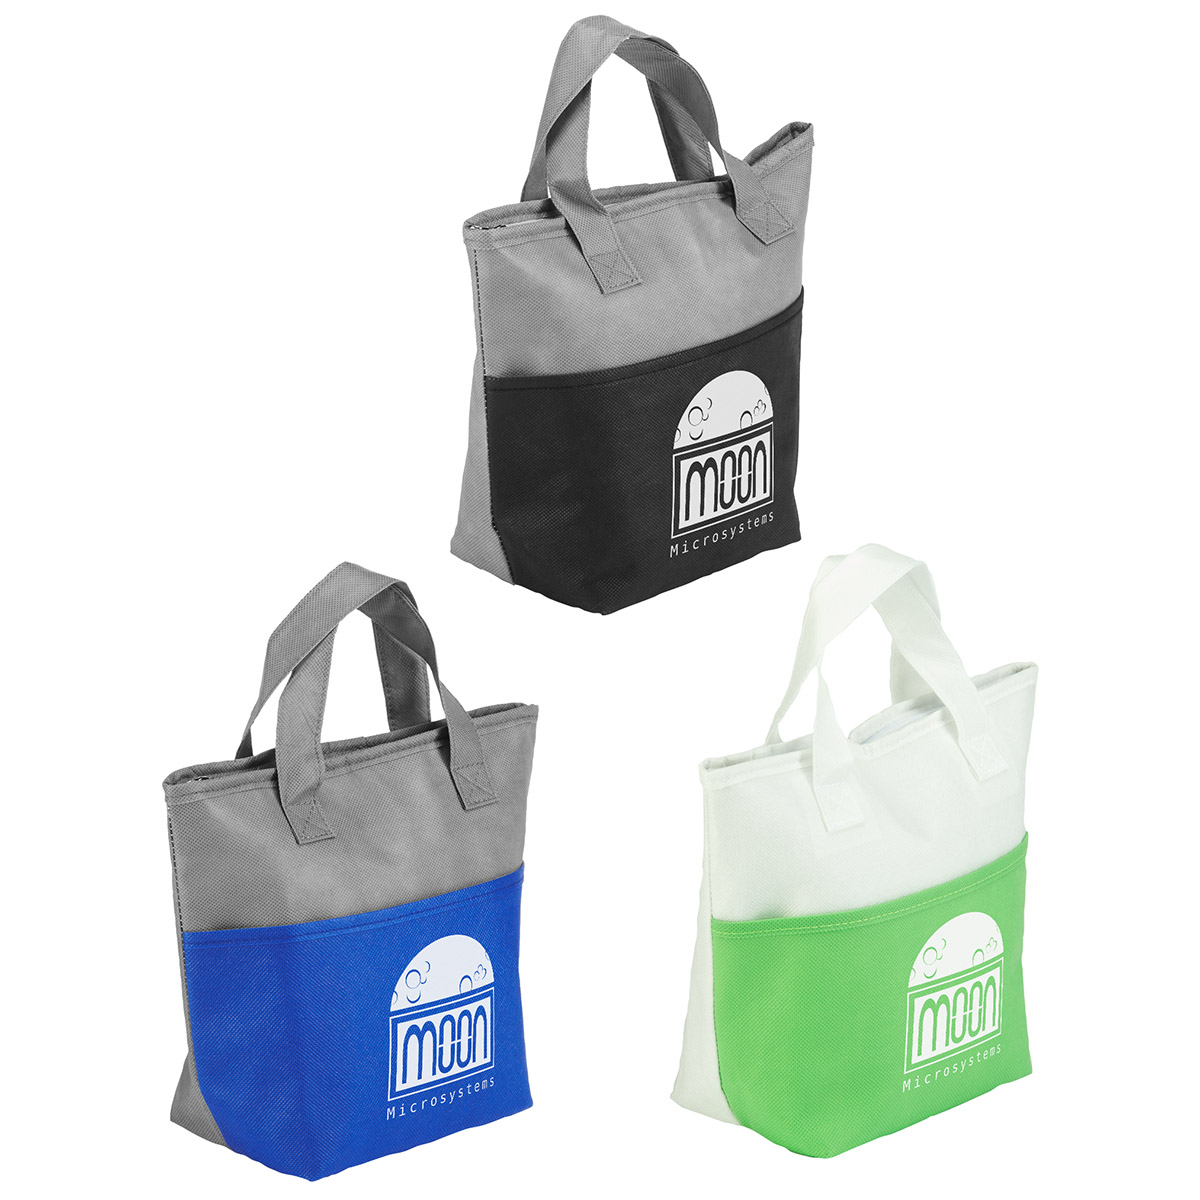 Santa Ana Insulated Snack Tote Bag, WBA-SA10, 1 Colour Imprint